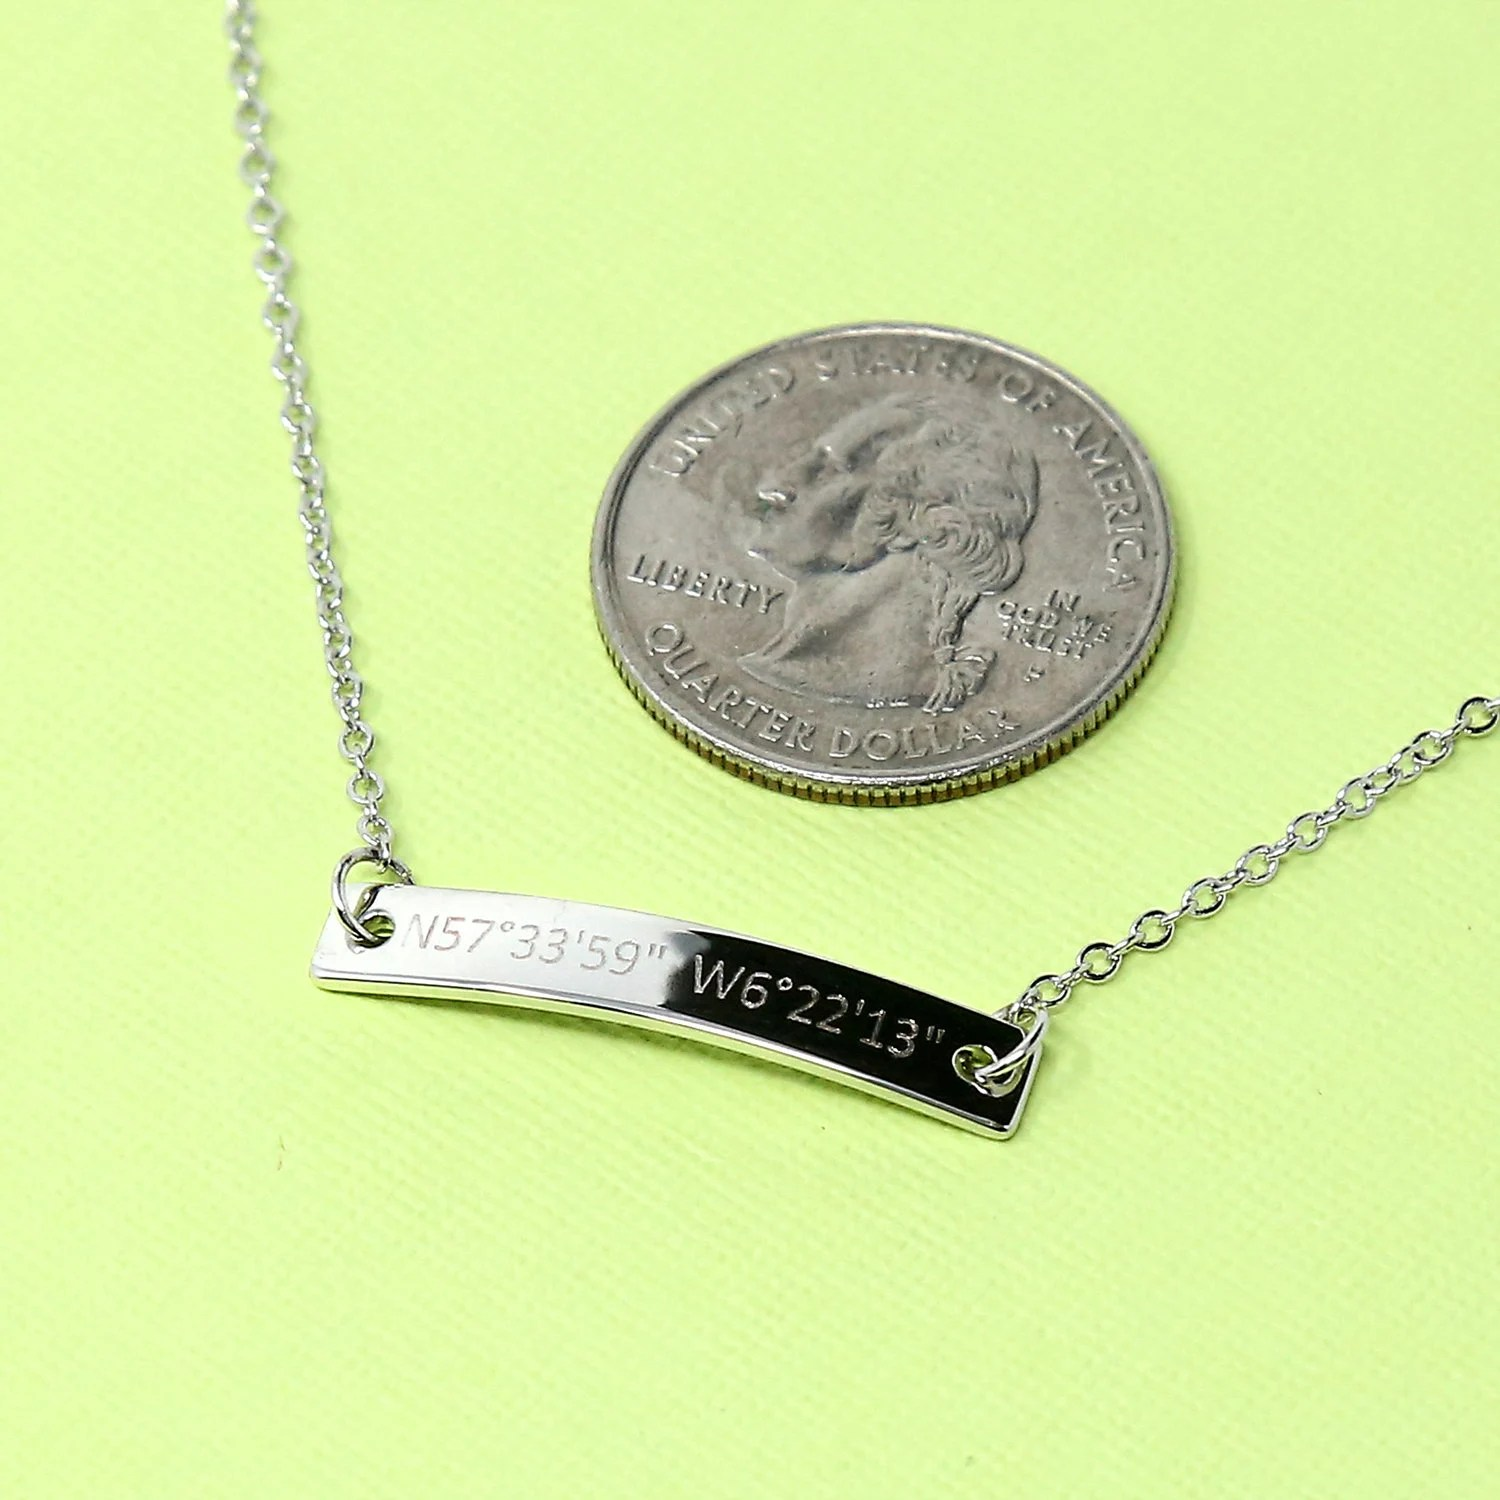 Engraved Necklaces Name bar necklace Personalized Engraved image 4